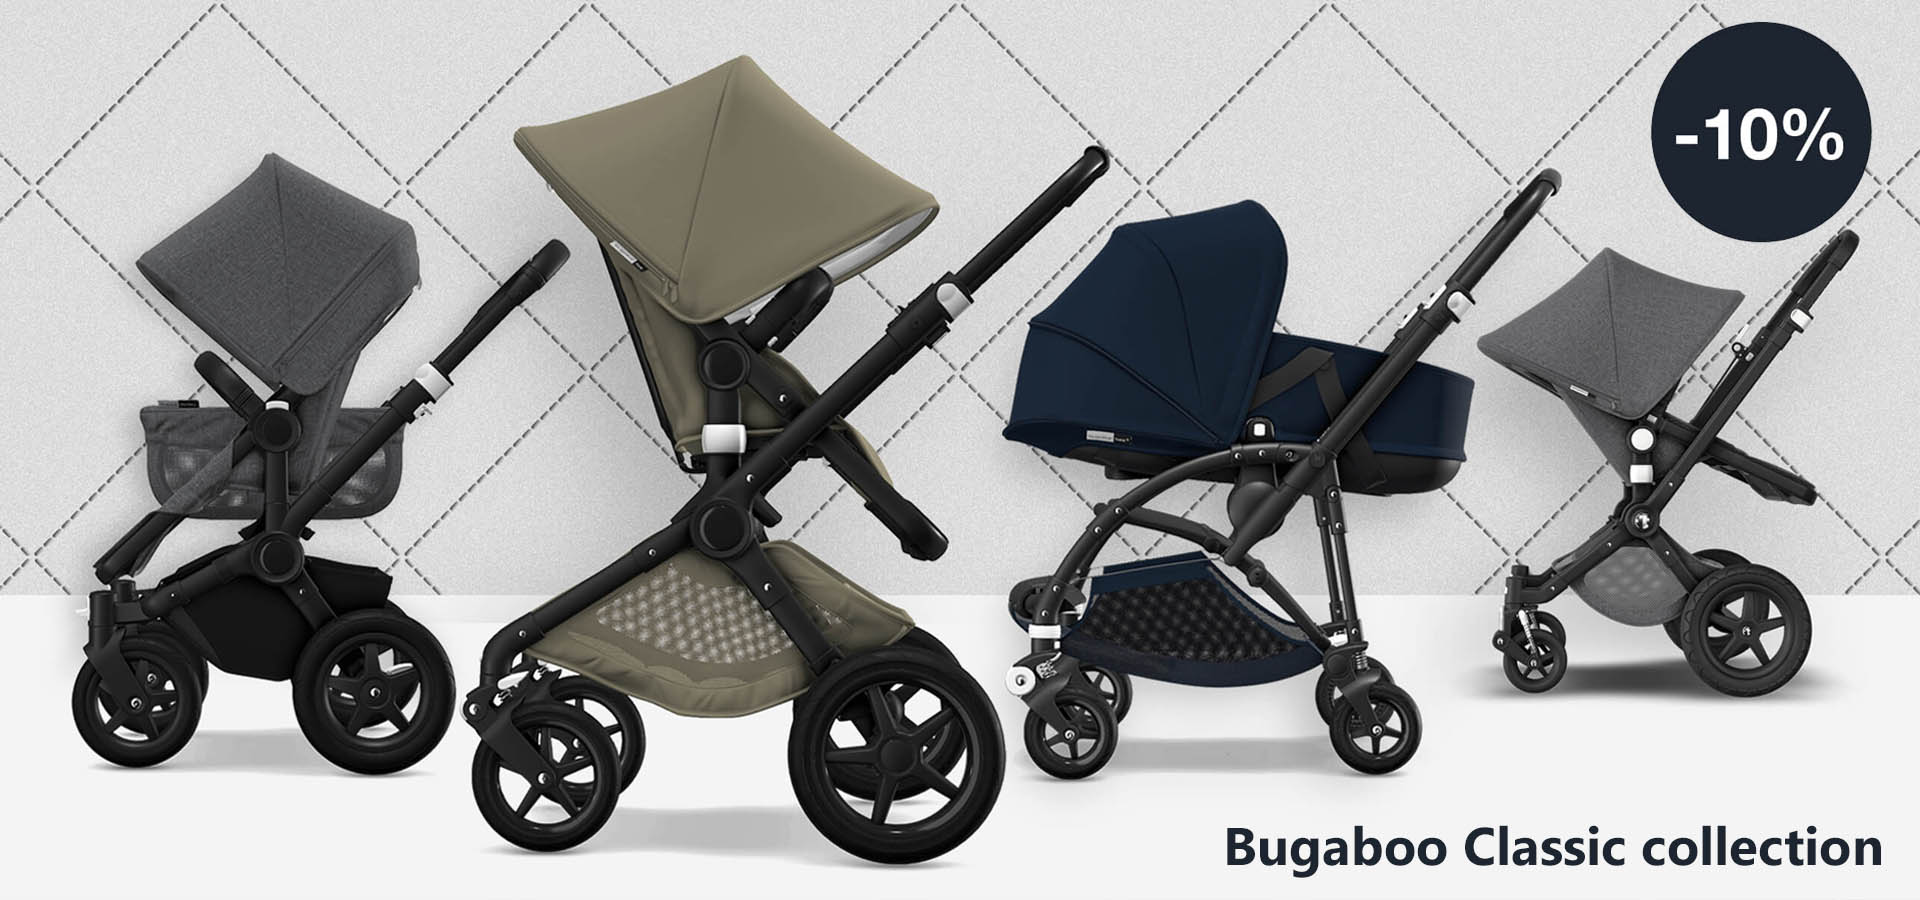 Bugaboo Classic collection -10%